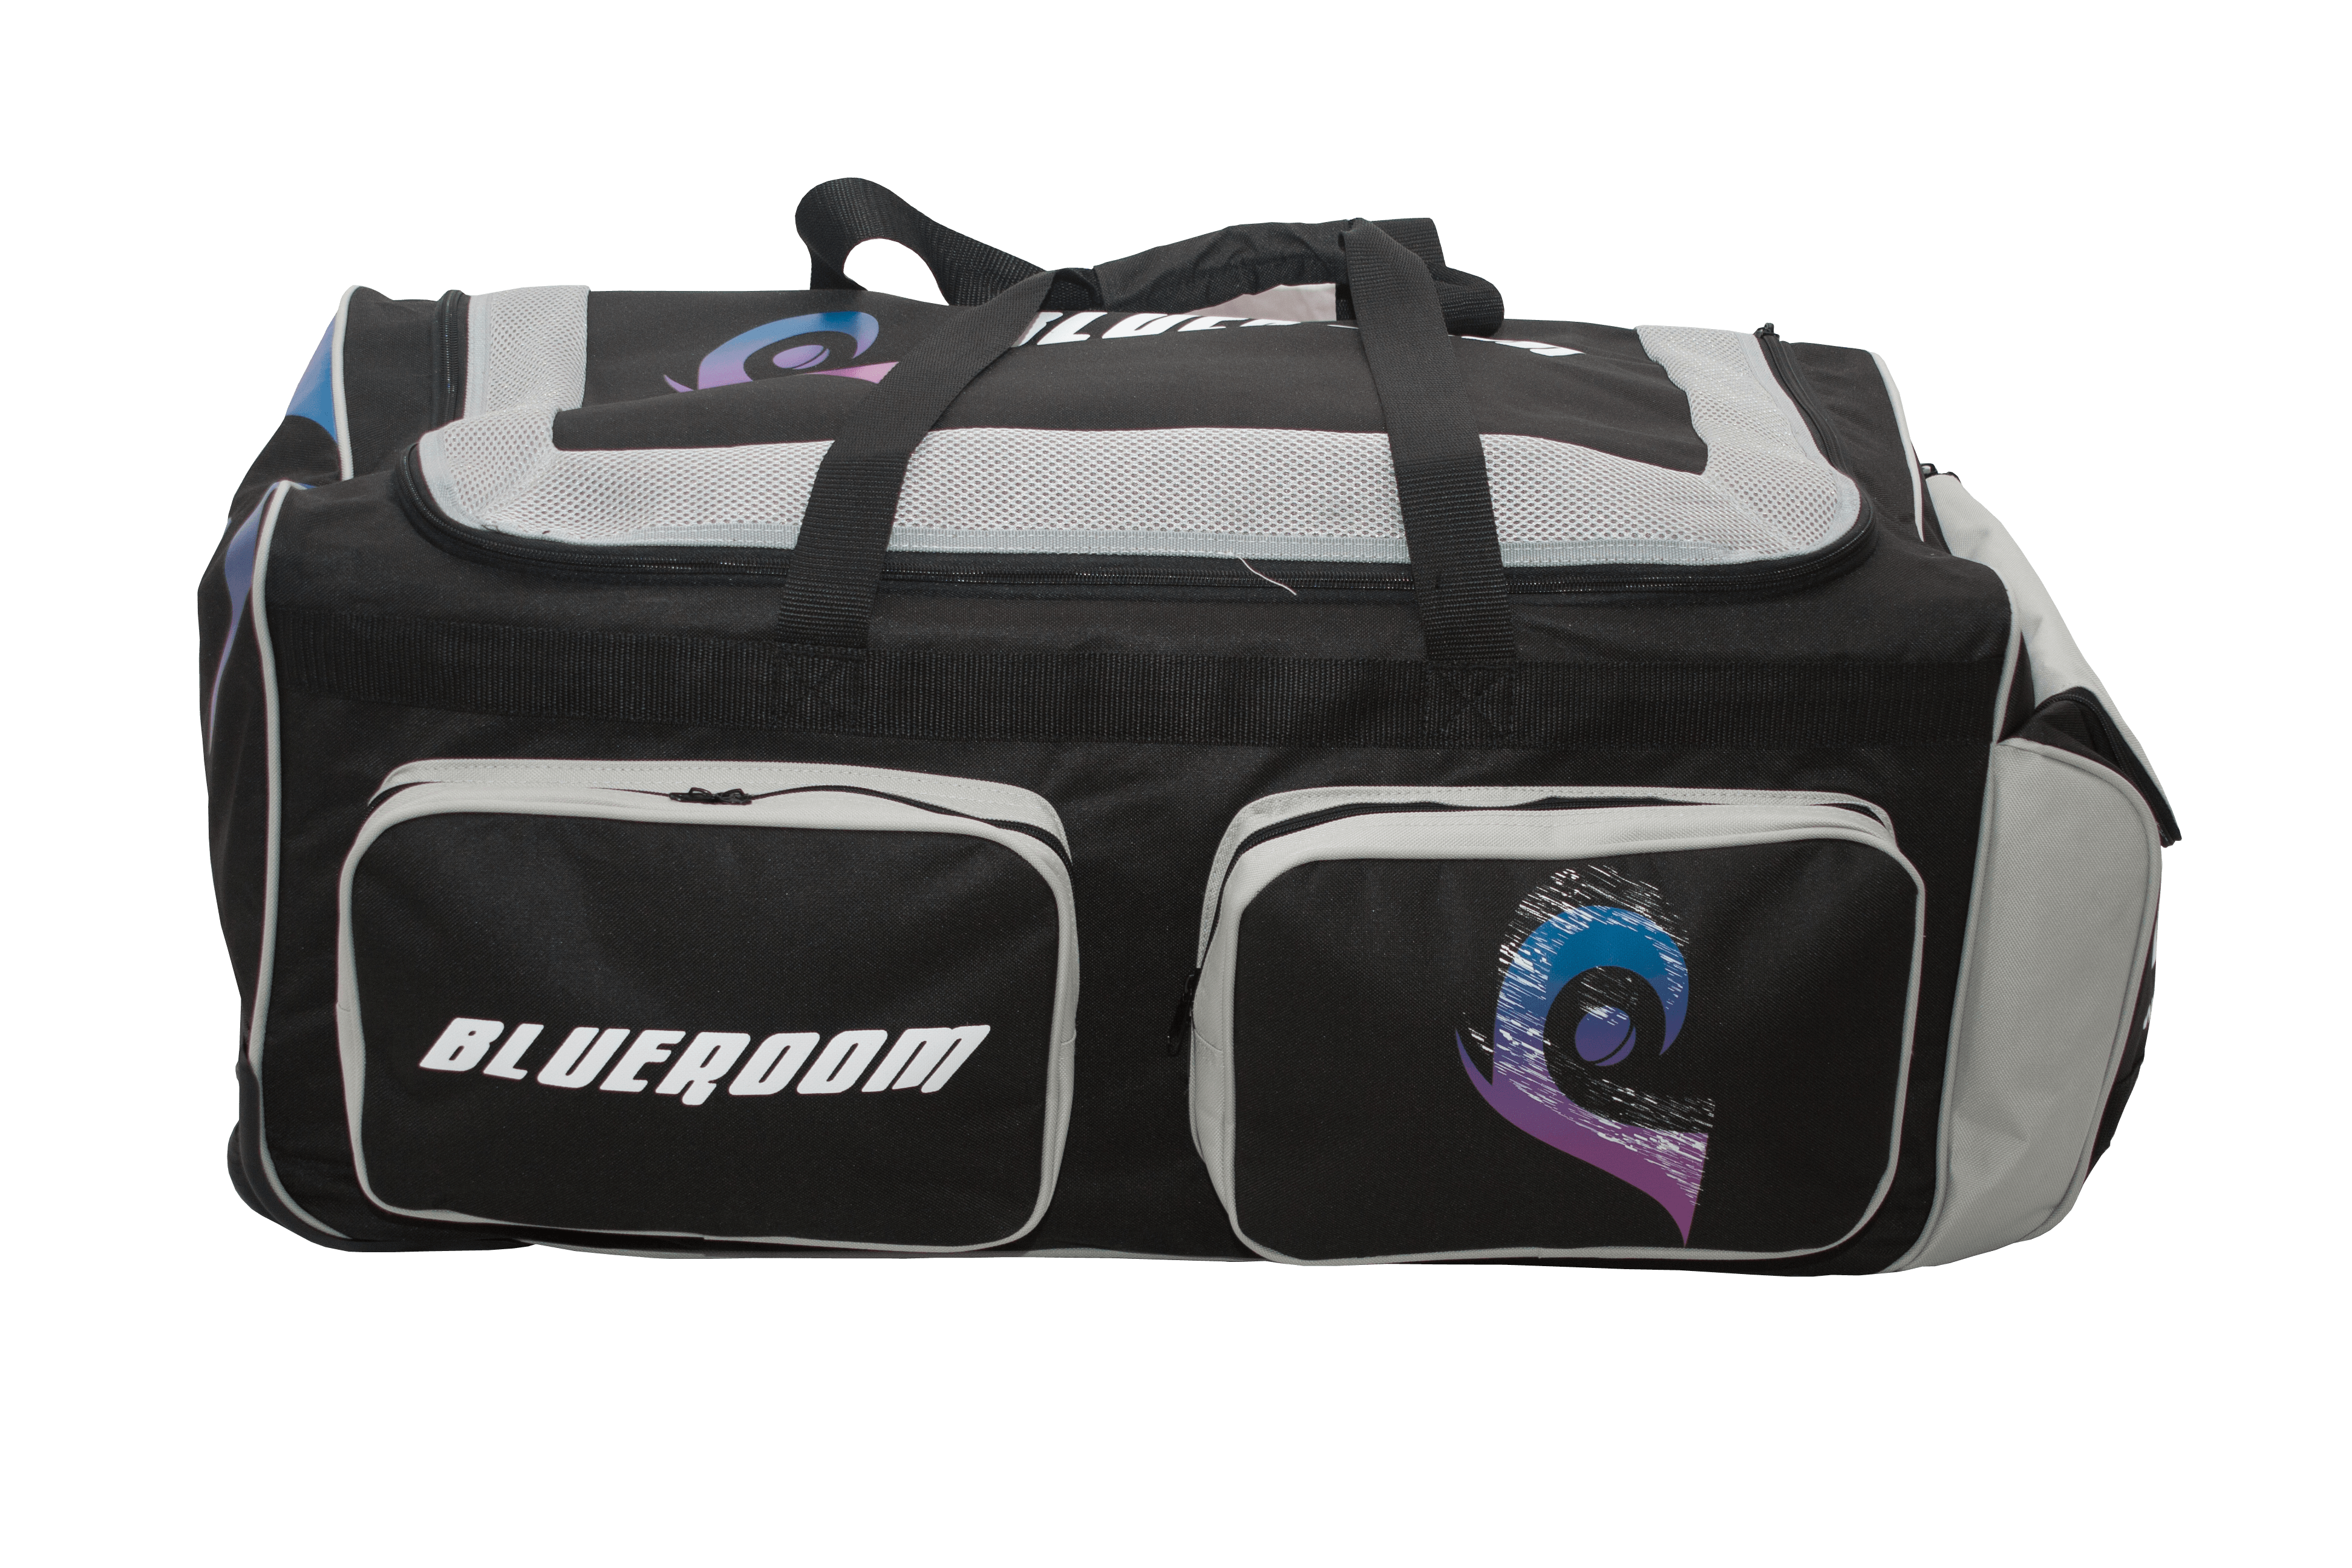 Blueroom Bag